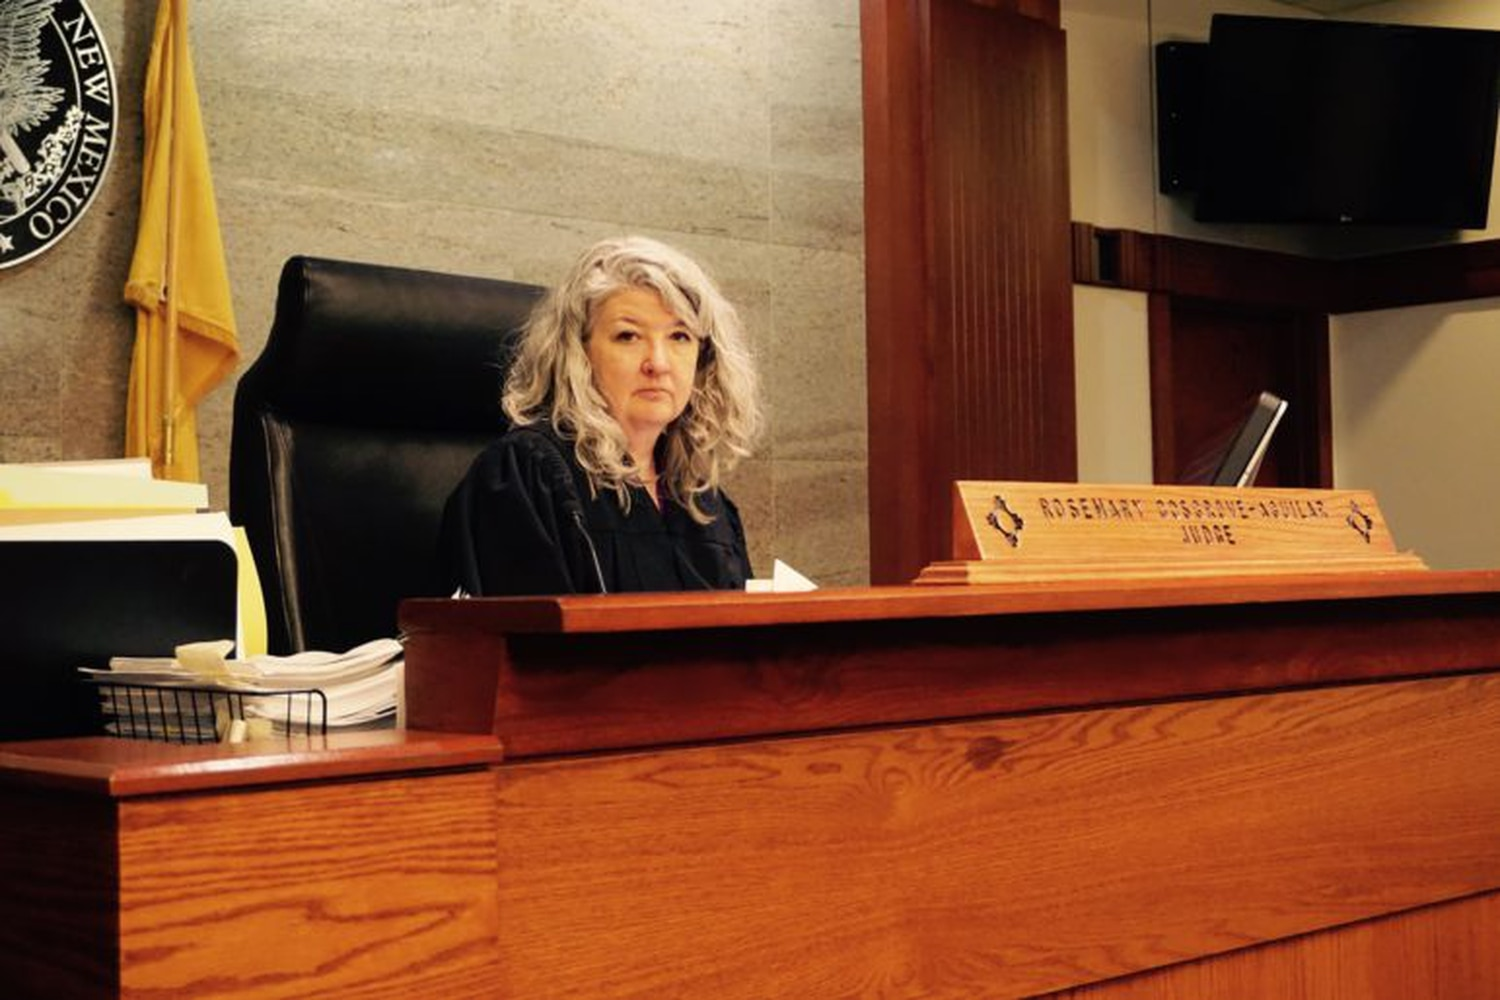 Judge Rosemary Cosgrove-Aguilar presides over the Solutions, Treatment, and Education Program.